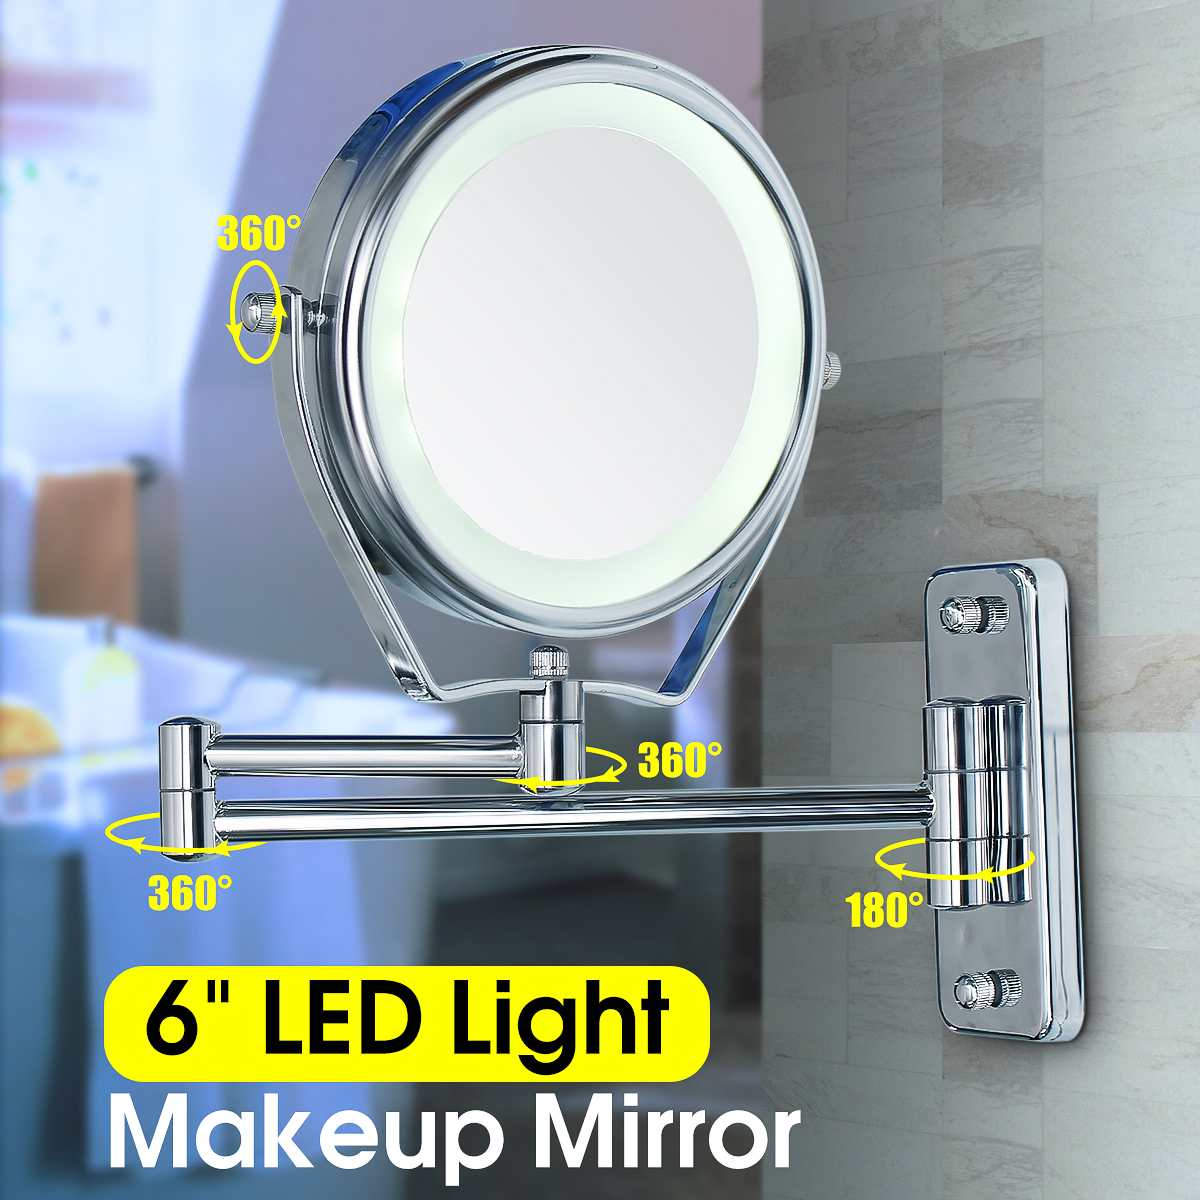 360 Rotary 6 Inch Double Side Led Illuminated Magnifying Bathroom Shaving Shower Mirrors 7x Makeup Wall Cosmetic Mirror W/ Light360 Rotary 6 Inch Double Side Led Illuminated Magnifying Bathroom Shaving Shower Mirrors 7x Makeup Wall Cosmetic Mirror W/ Light